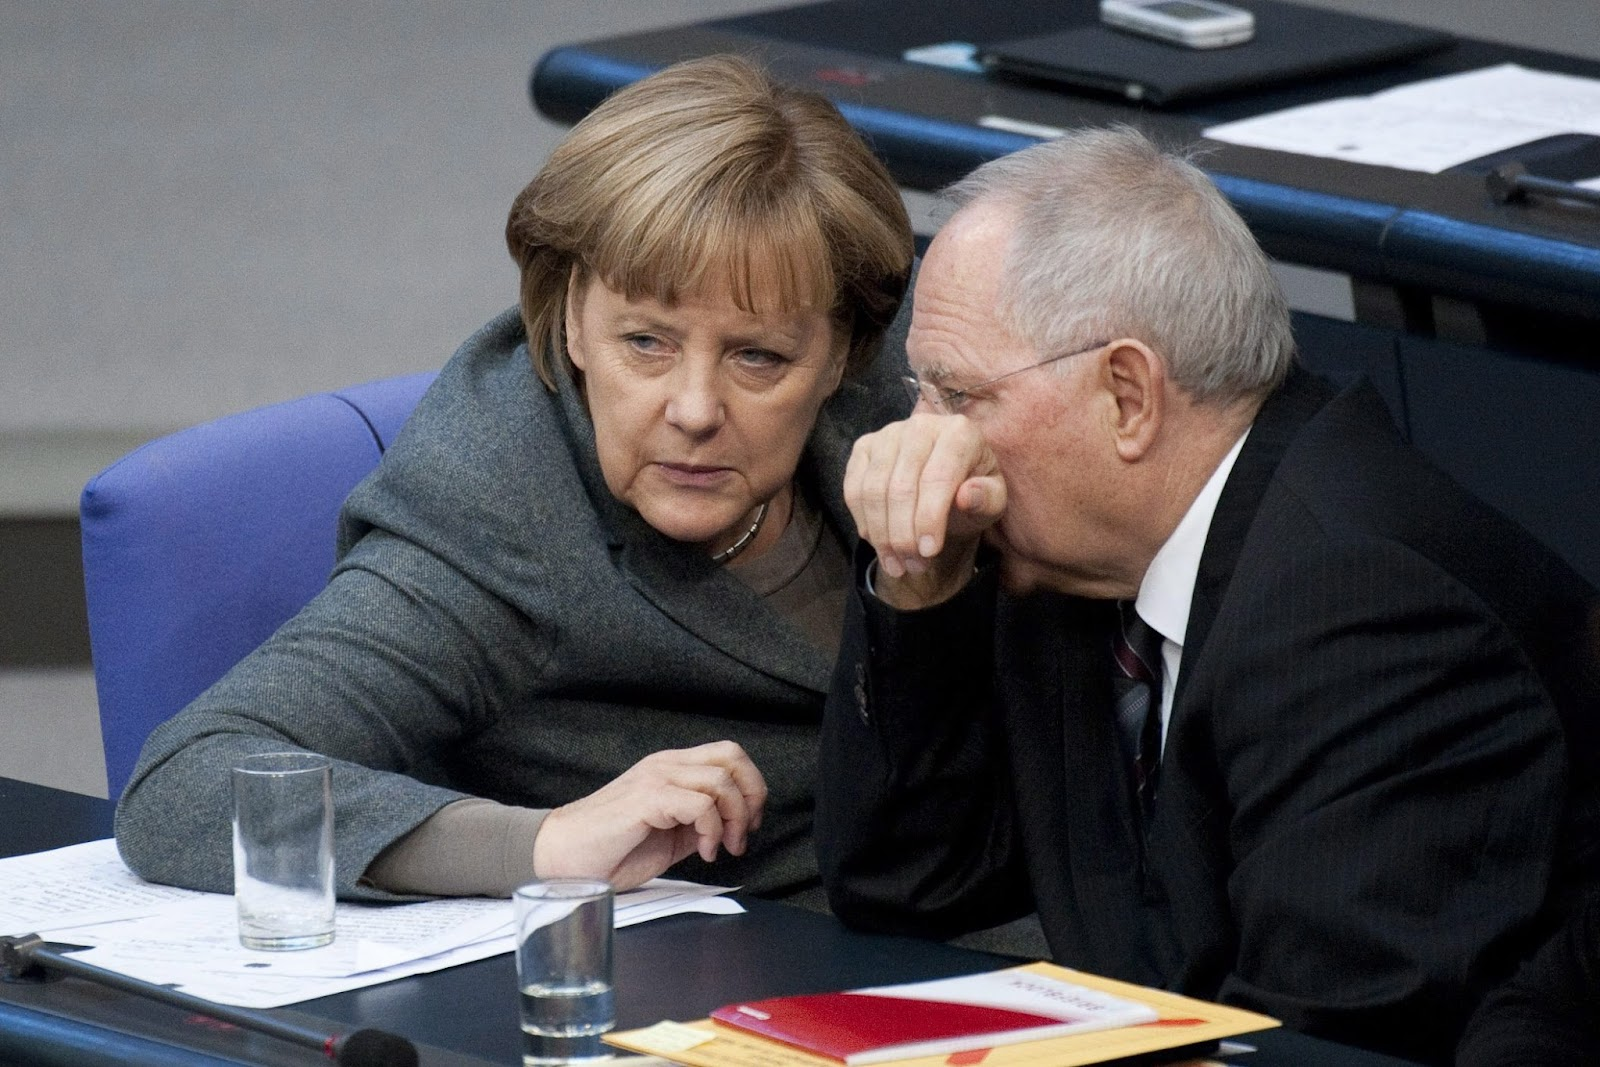 epa03014771 German Chancellor Angela Merkel and german Finance Minister Wolfgang Schaeuble chat at the Bundestag in Berlin, Germany, 25 November 2011. Reports state that the German Federal Government votes on the German 2012 budget, 25 November 2011.  EPA/ROBERT SCHLESINGER